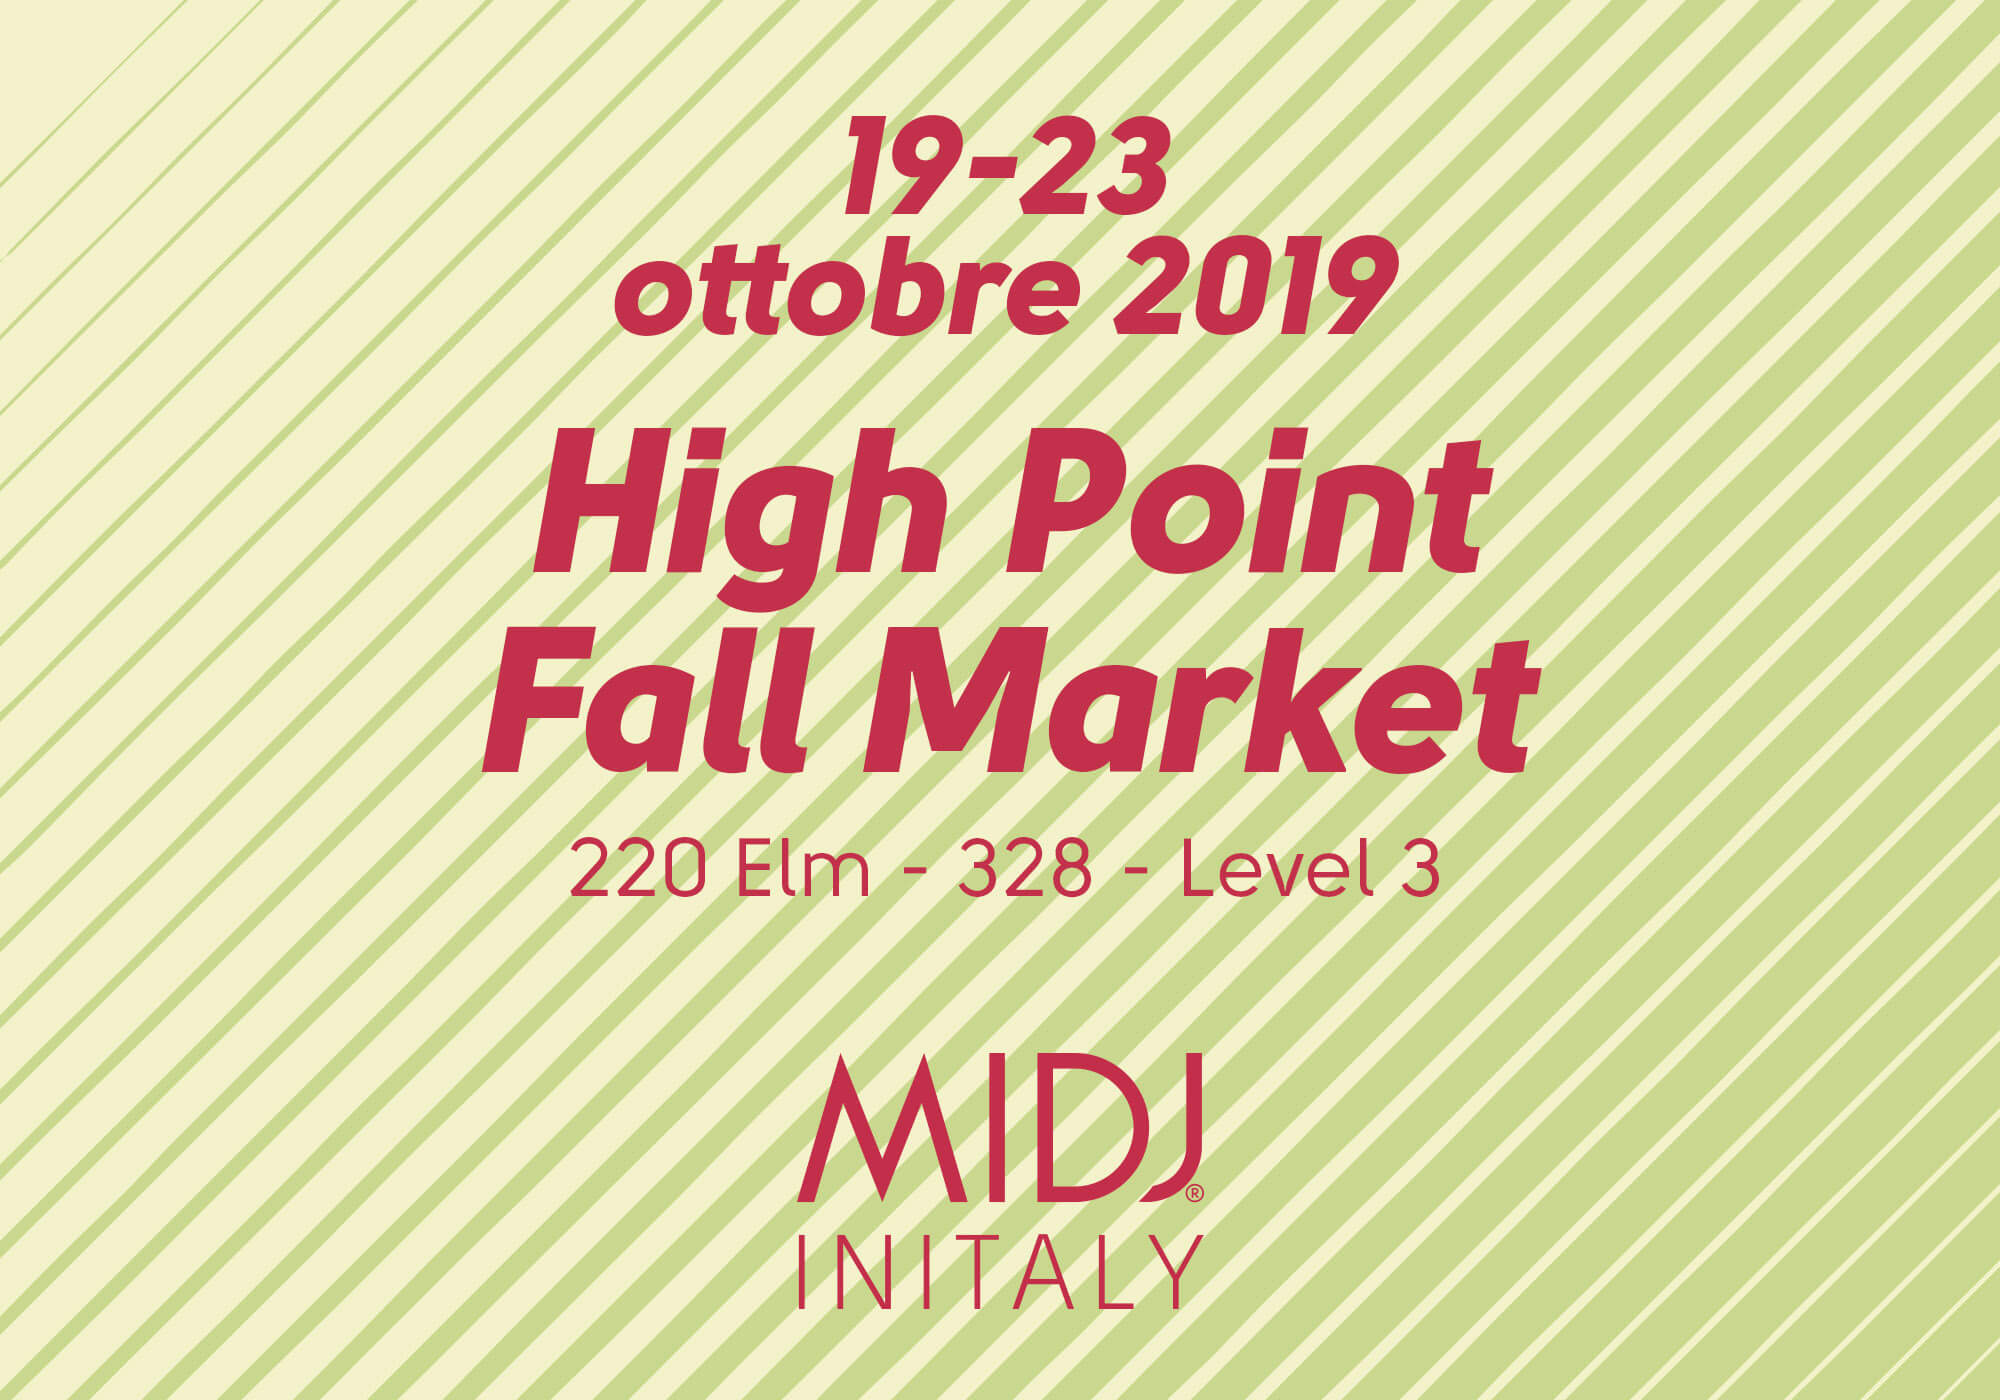 High Point Fall Market 2019